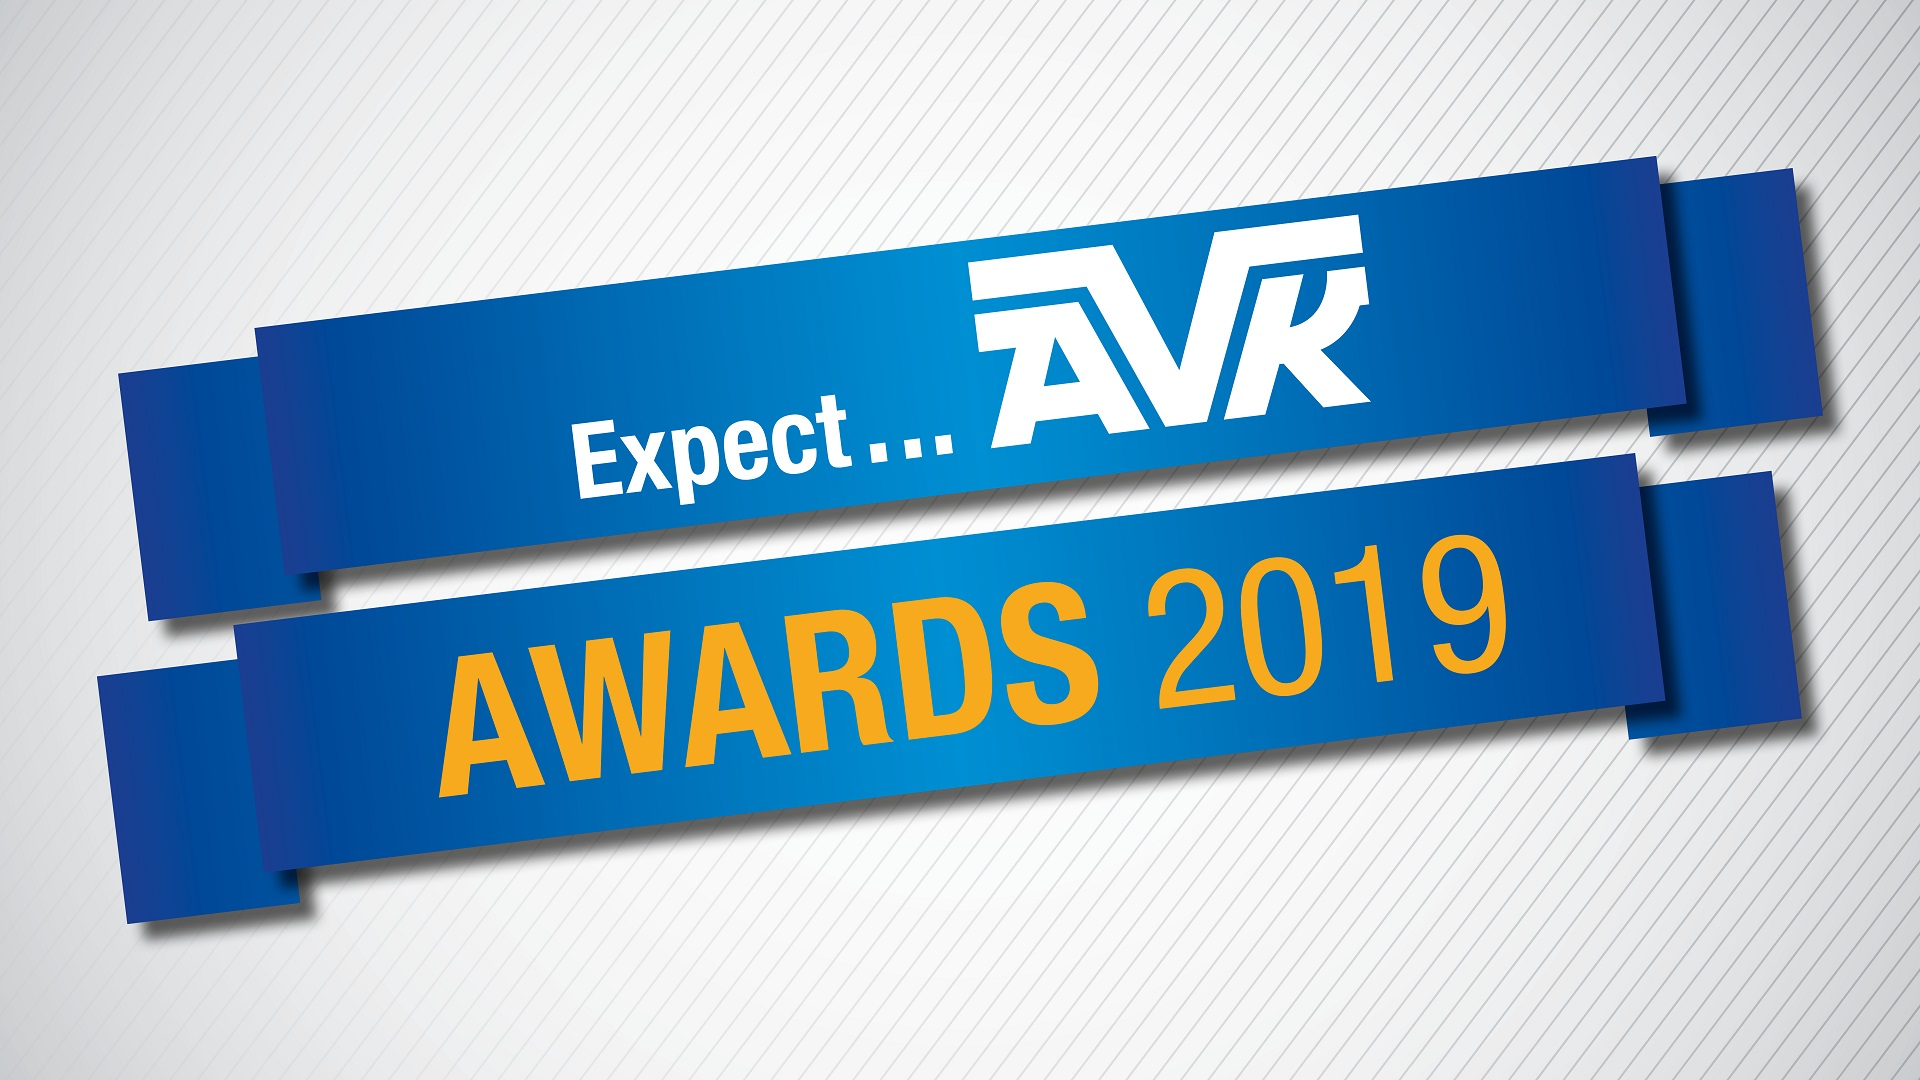 AVK in the UK Expect Awards 2019